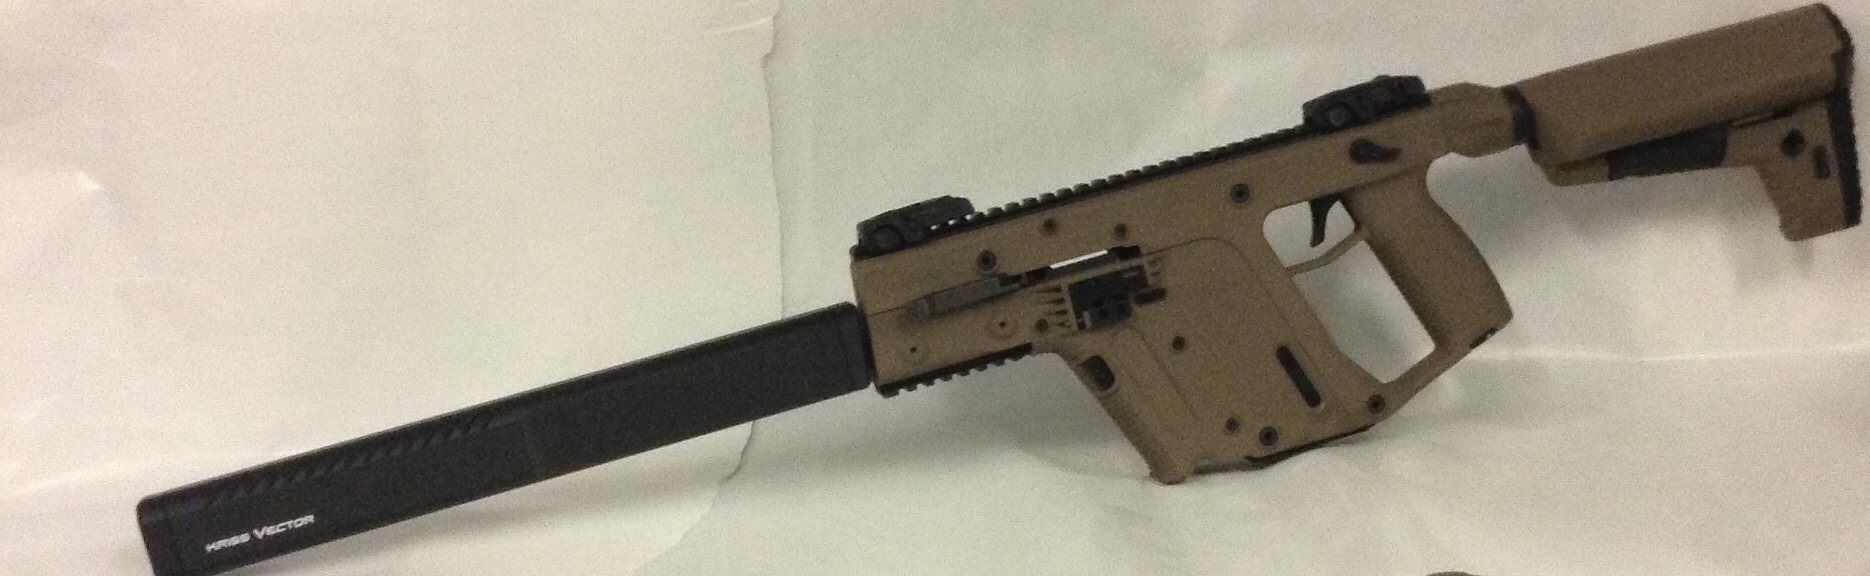 Kriss vector 45ACP Non Restricted G2 FDE